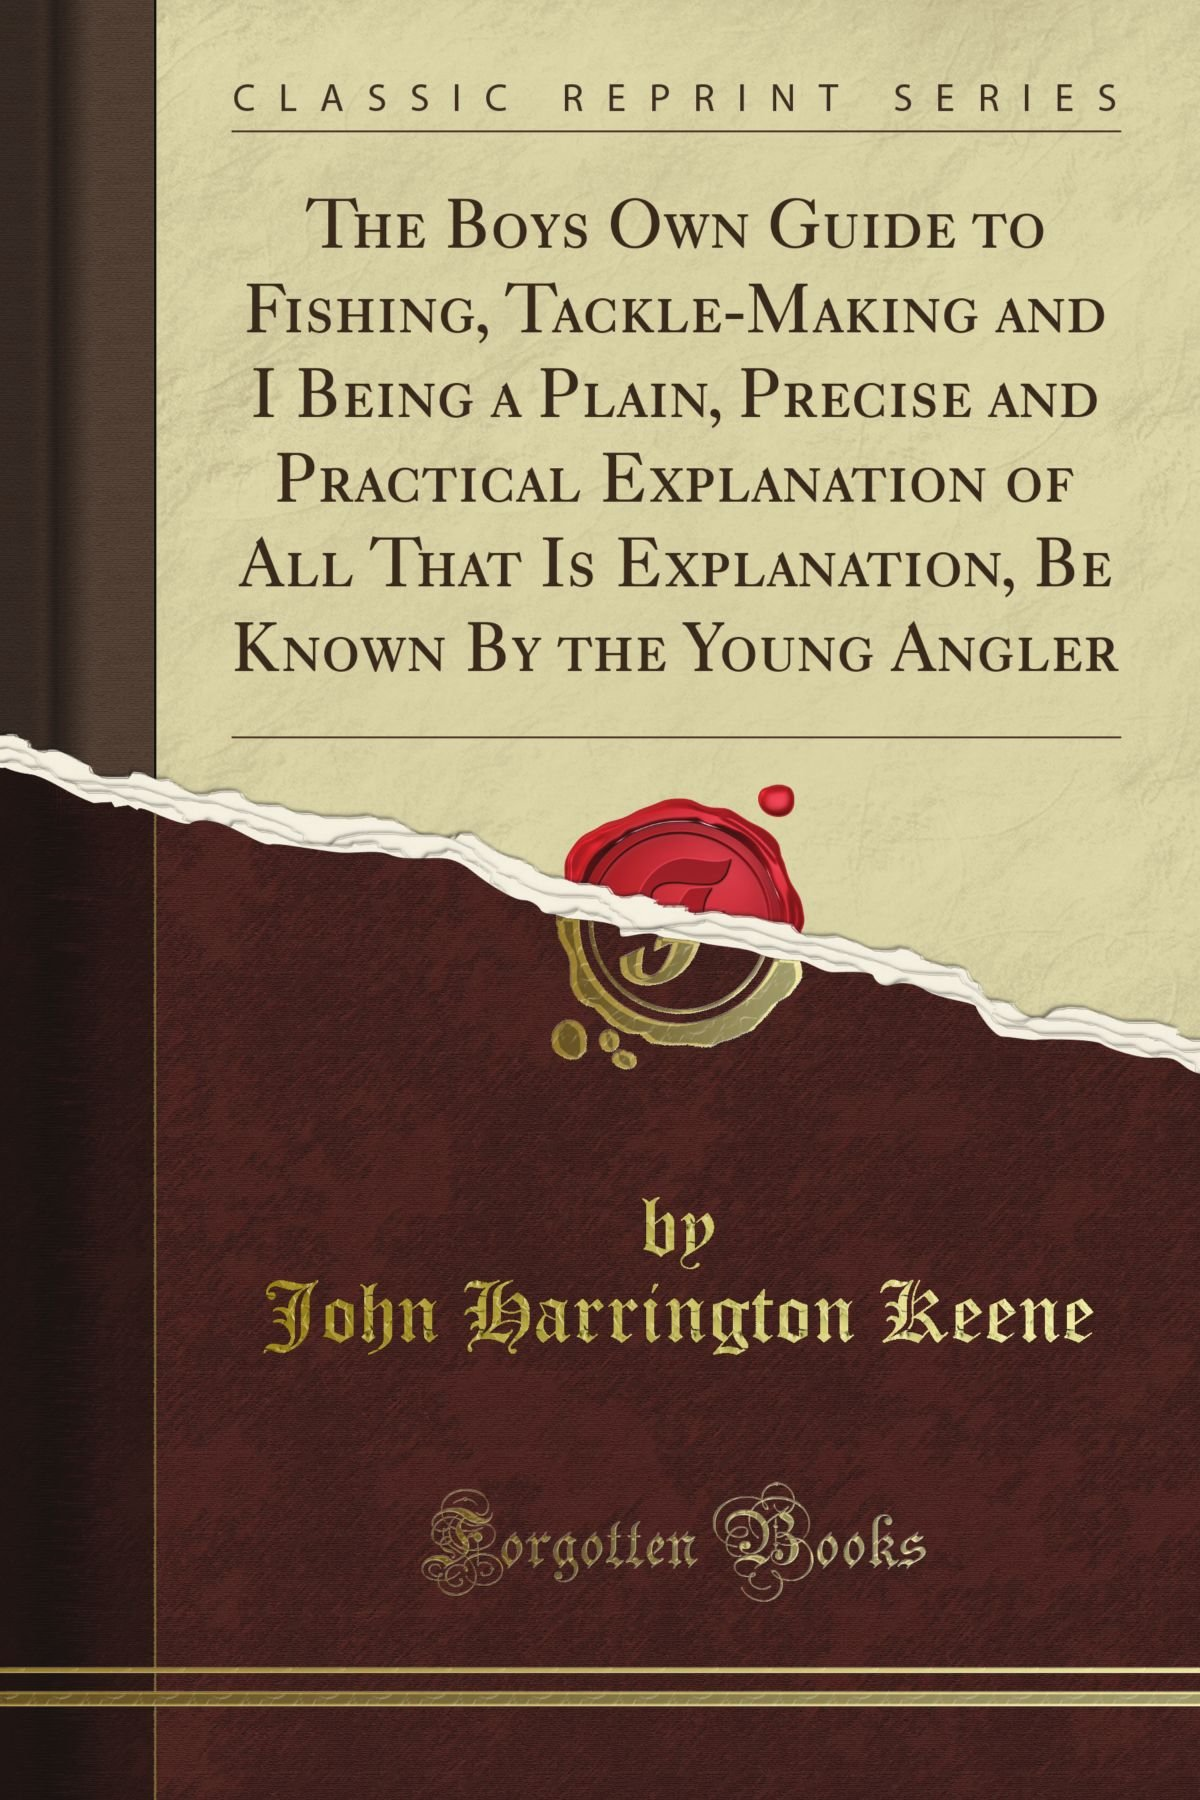 The Boy's Own Guide to Fishing, Tackle-Making and I Being a Plain, Precise and Practical Explanation of All That Is Explanation, Be Known By the Young Angler (Classic Reprint) pdf epub